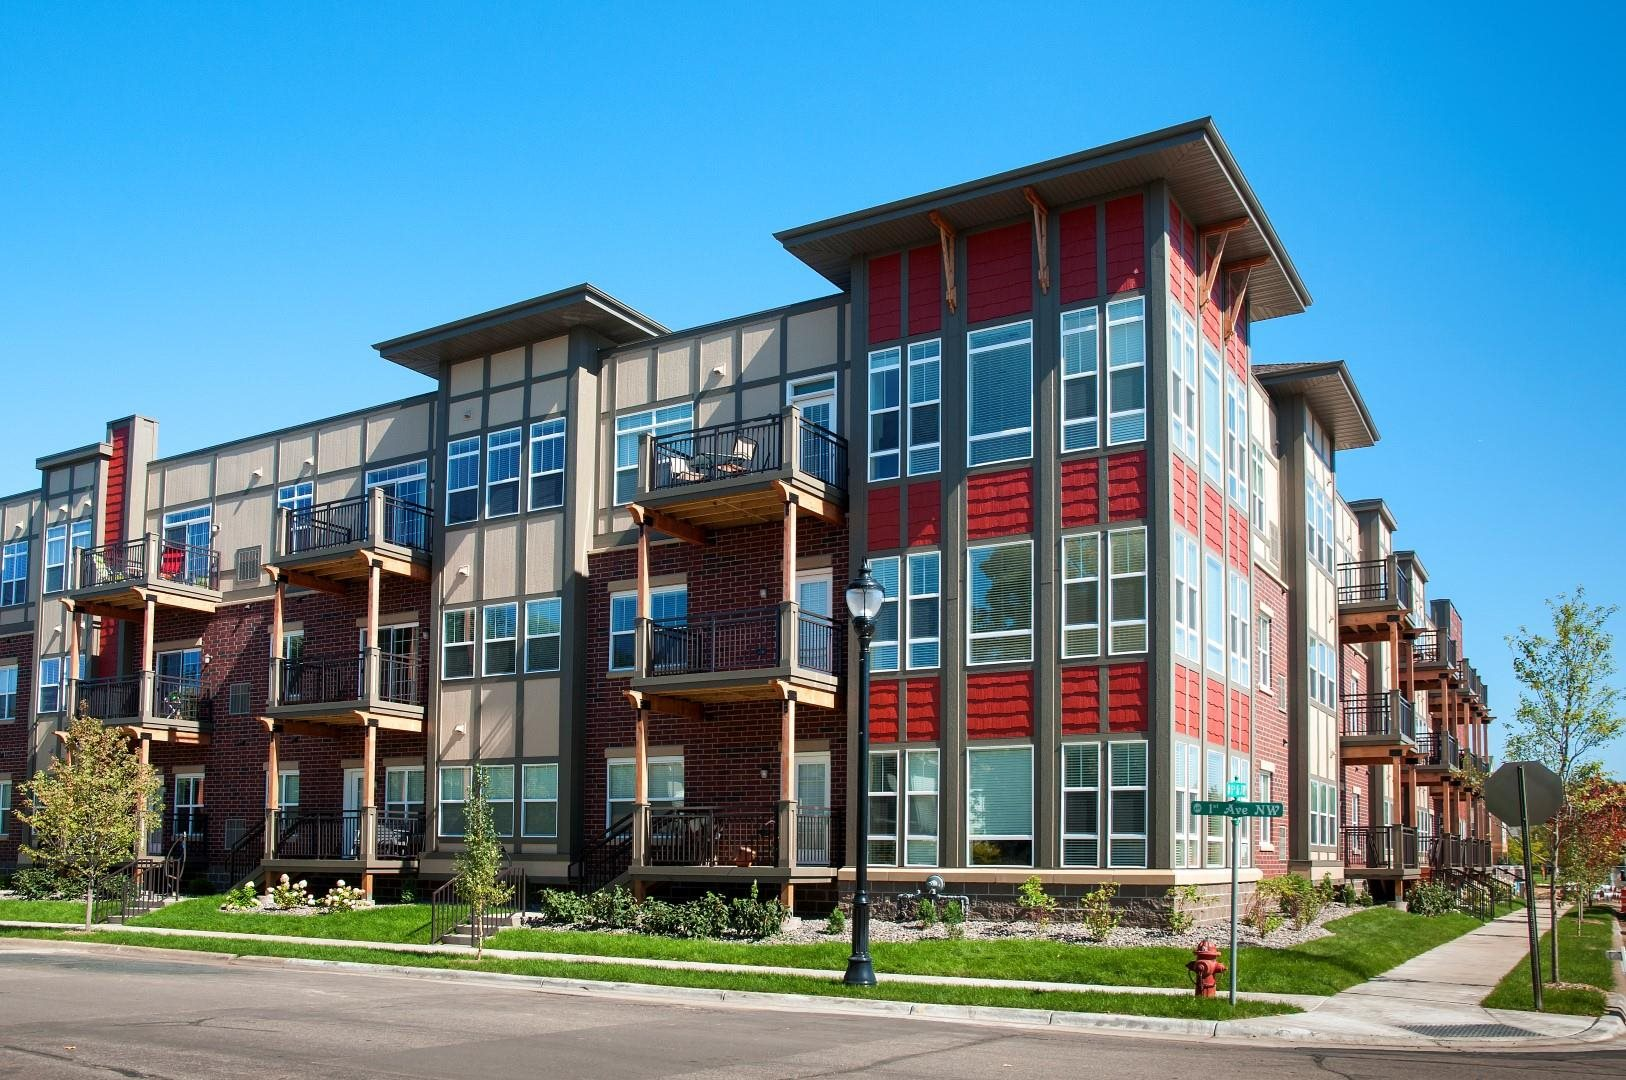 5 Central Apartments in Osseo received CDBG funds for a portion of Phase 1 construction.